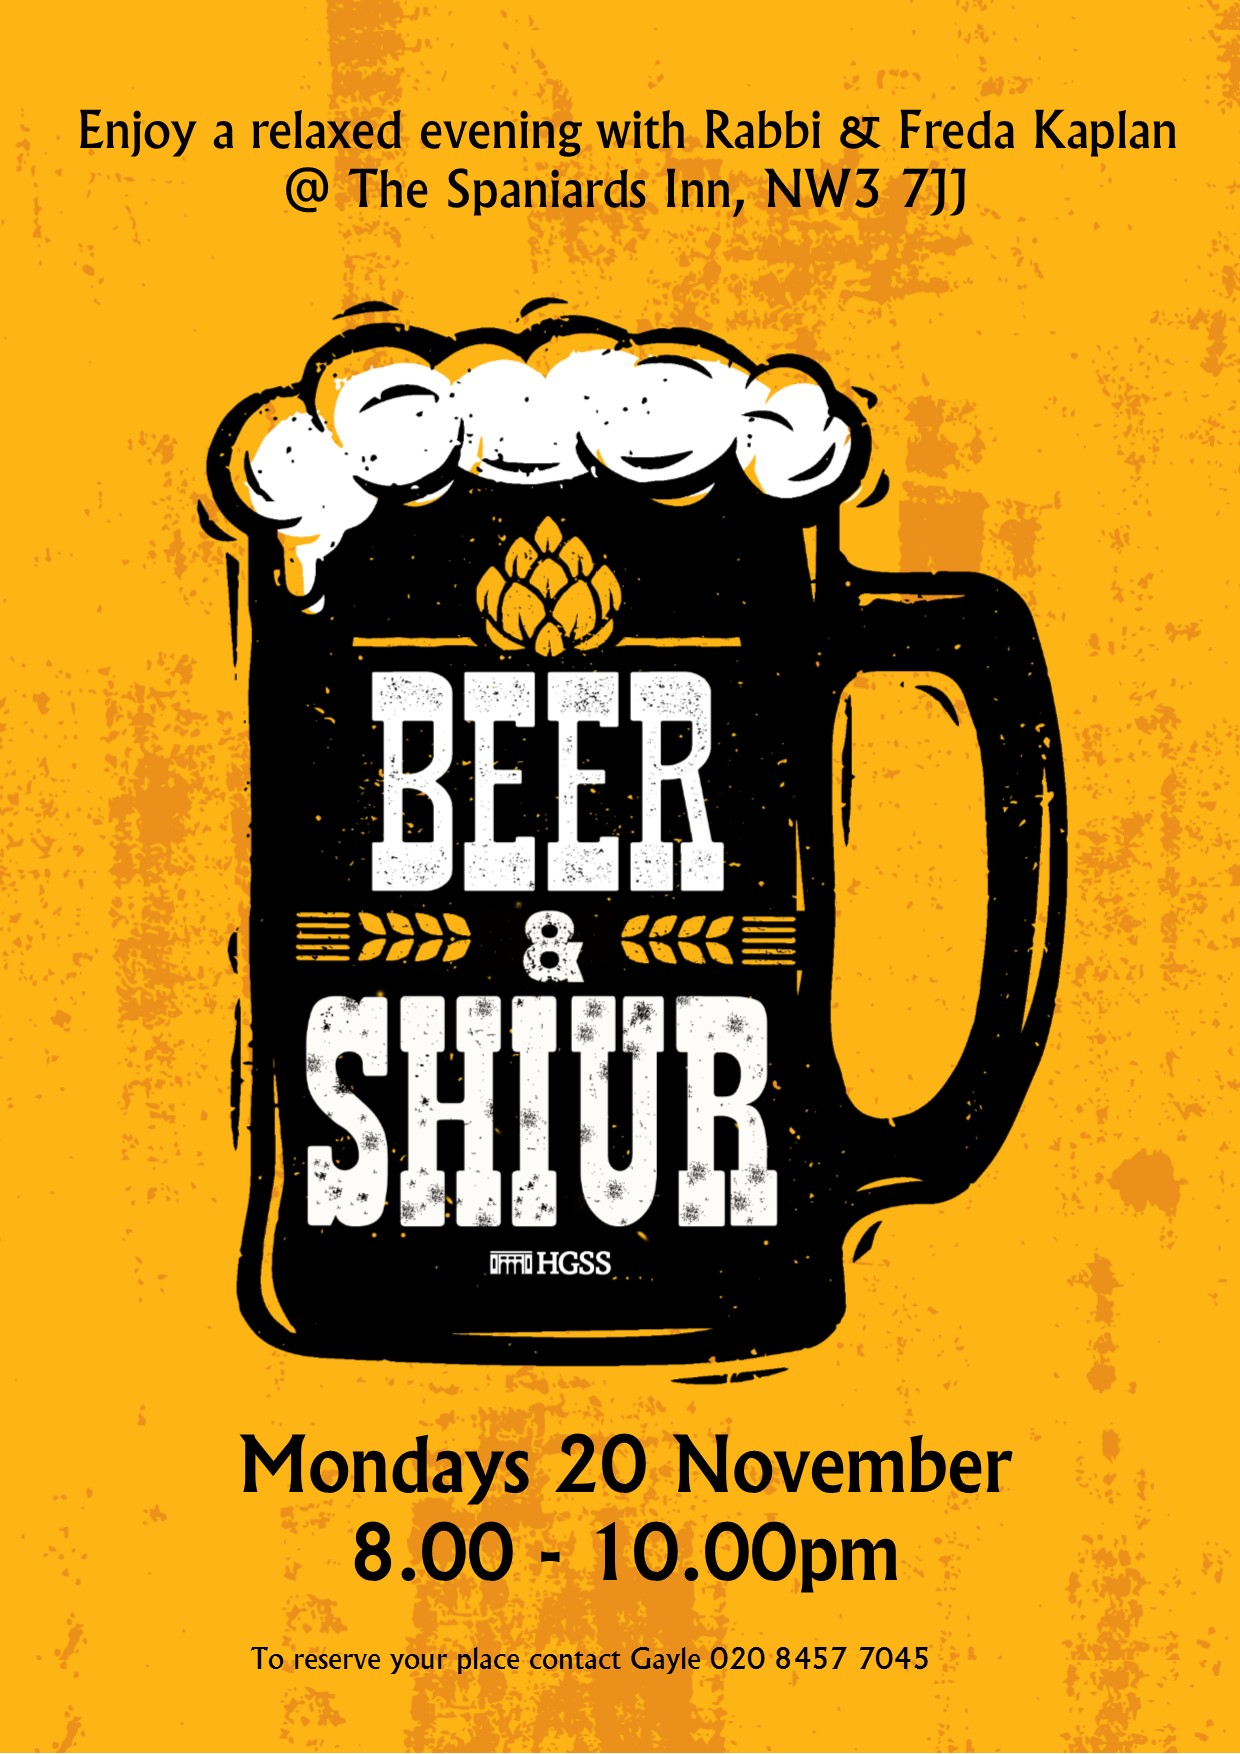 Beer & Shiur @ The Spaniards Inn, NW3 7JJ